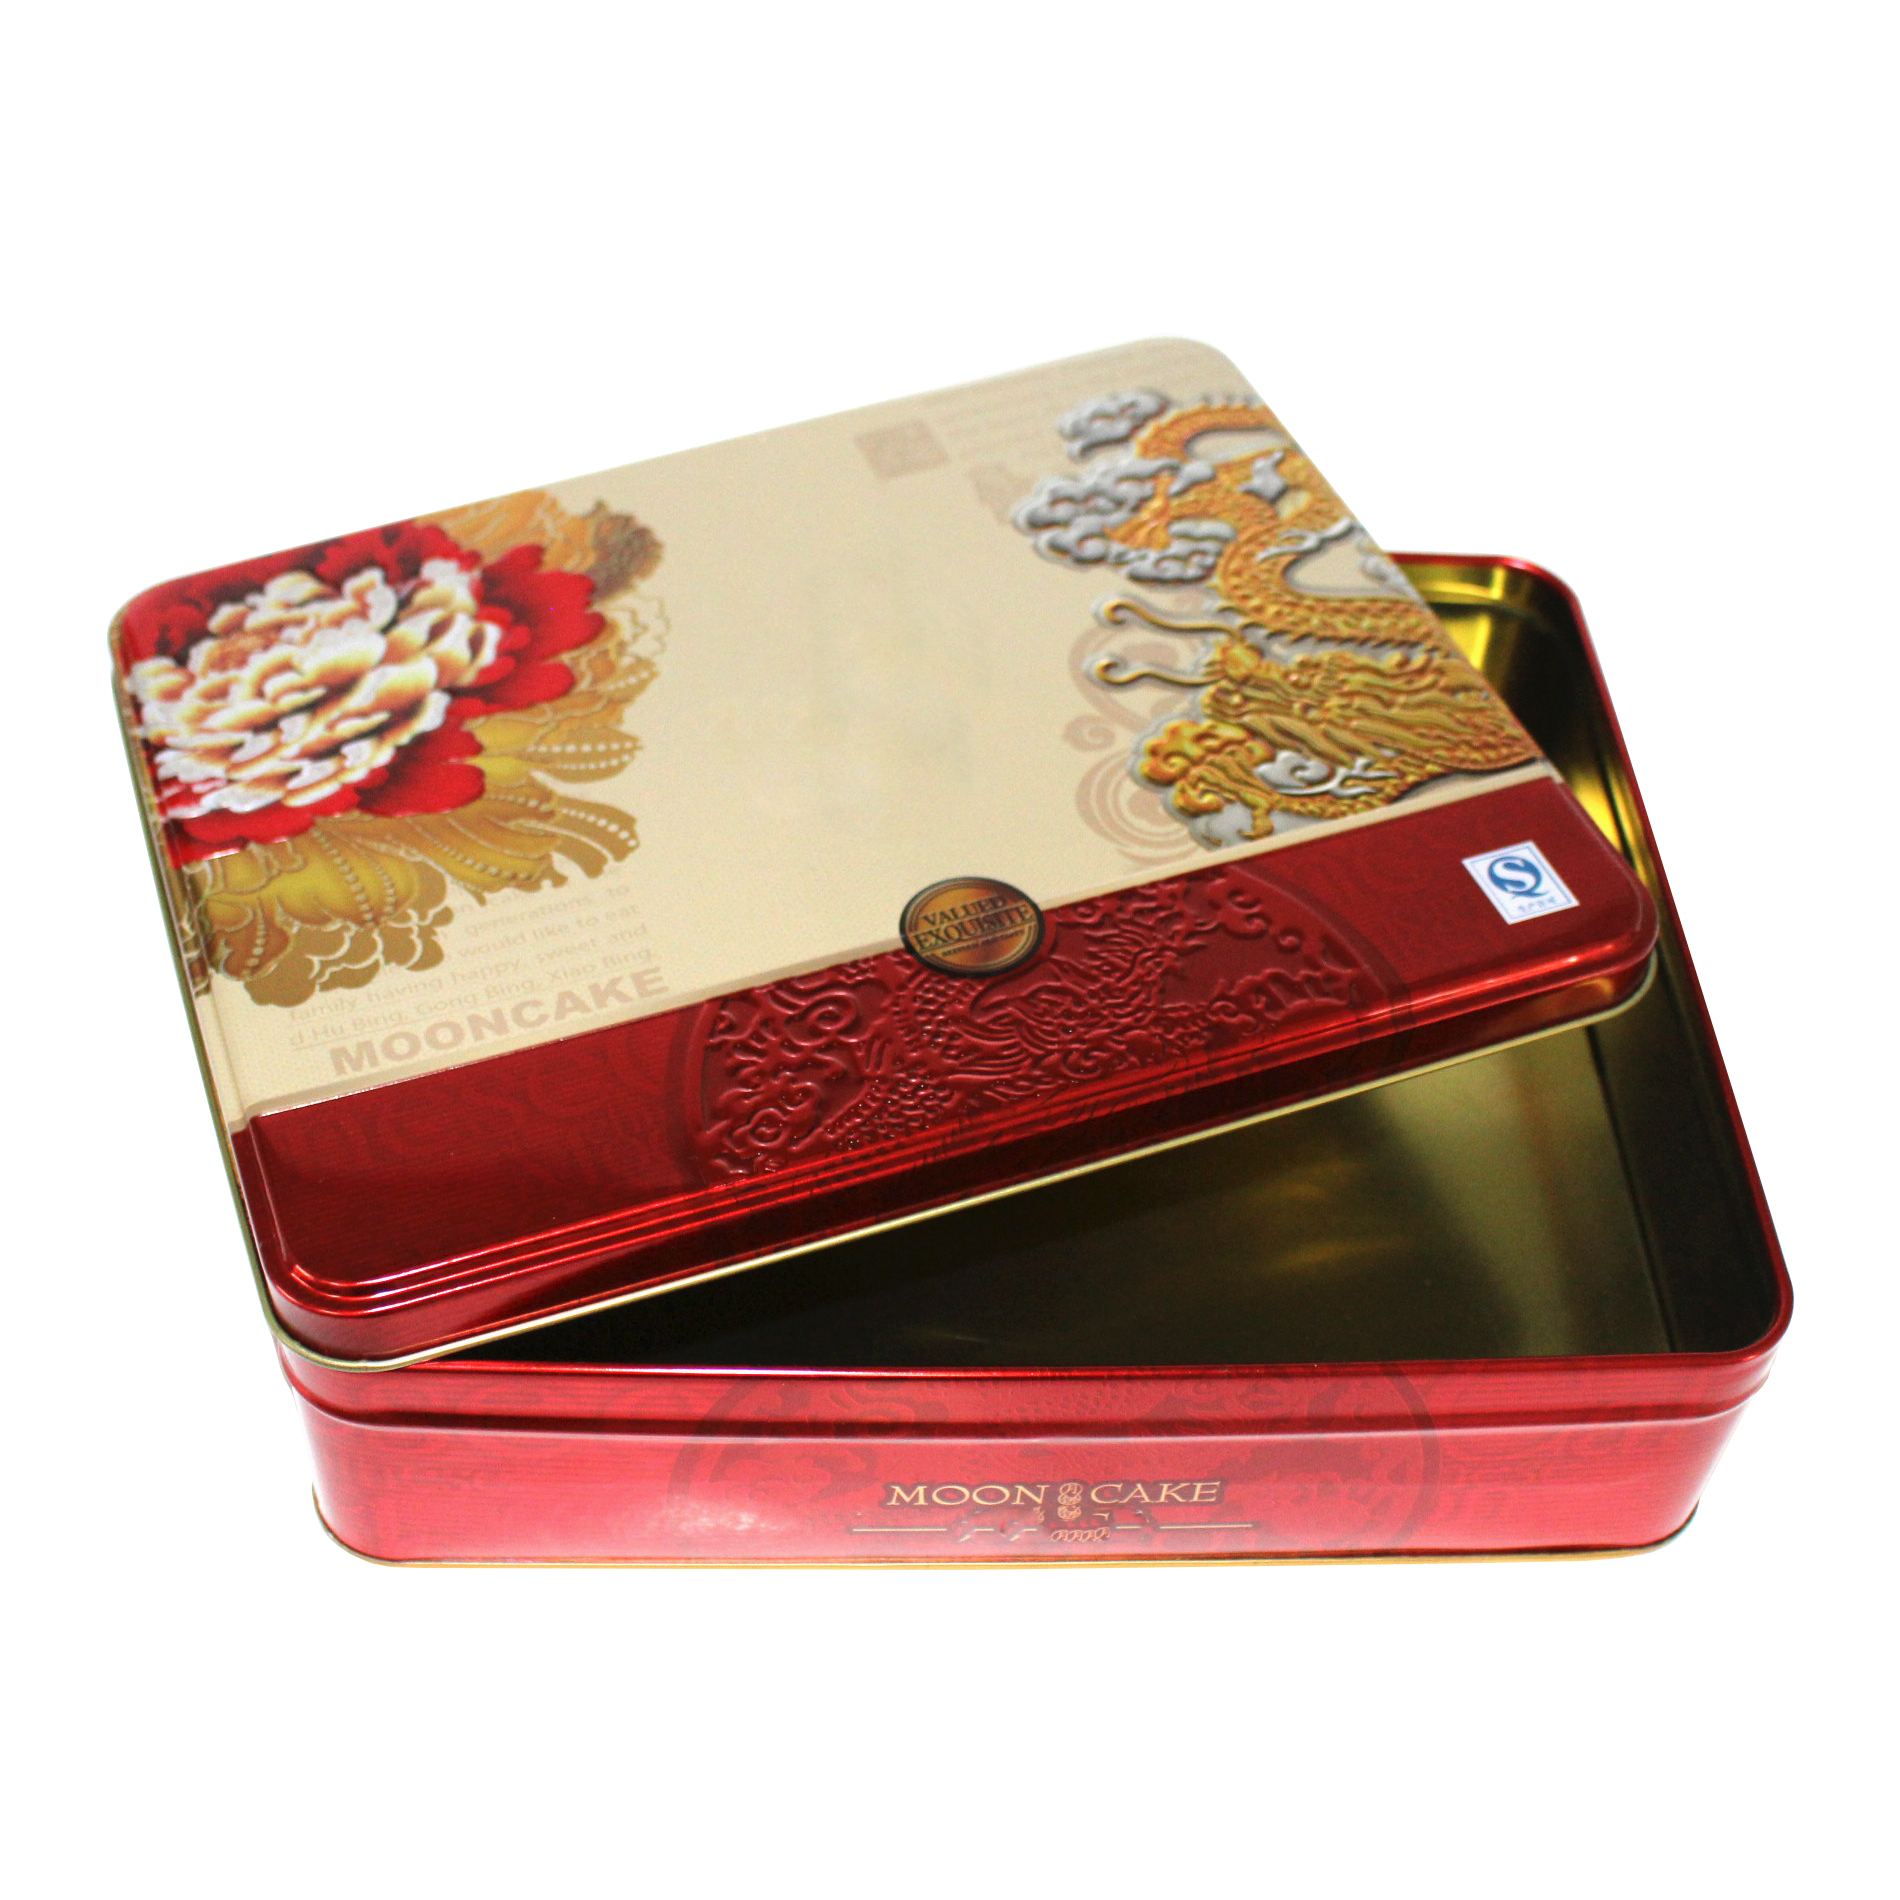 mooncake tinplate packaging